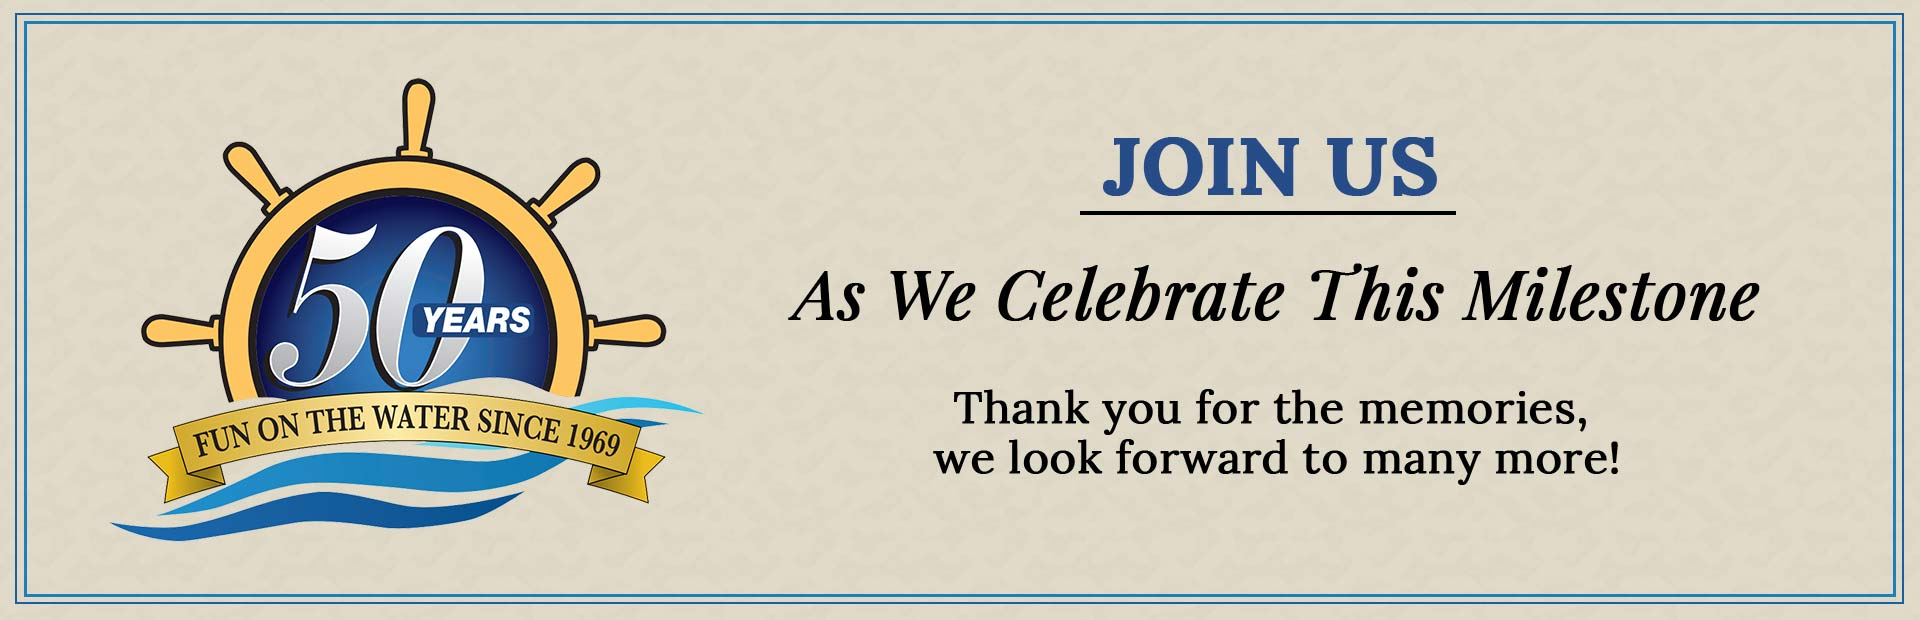 Join us as we celebrate this milestone! Thank you for the memories, we look forward to many more!